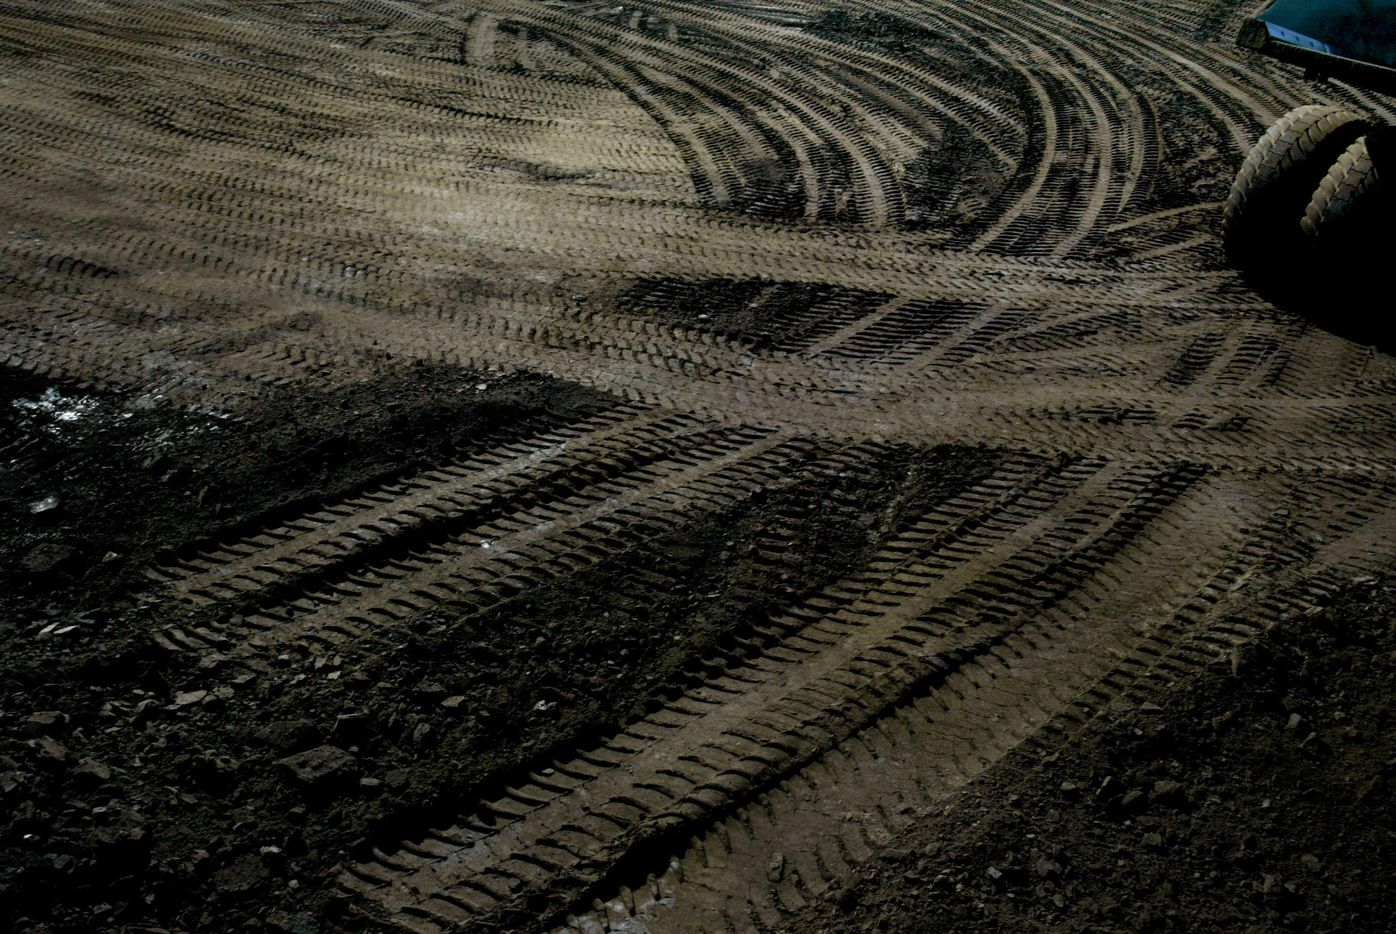 2005 FILE PHOTO -- The tracks of heavy haulers leave their 'footprints' on the landscape in a strip mine owned by Syncrude Canada Ltd. in Alberta.